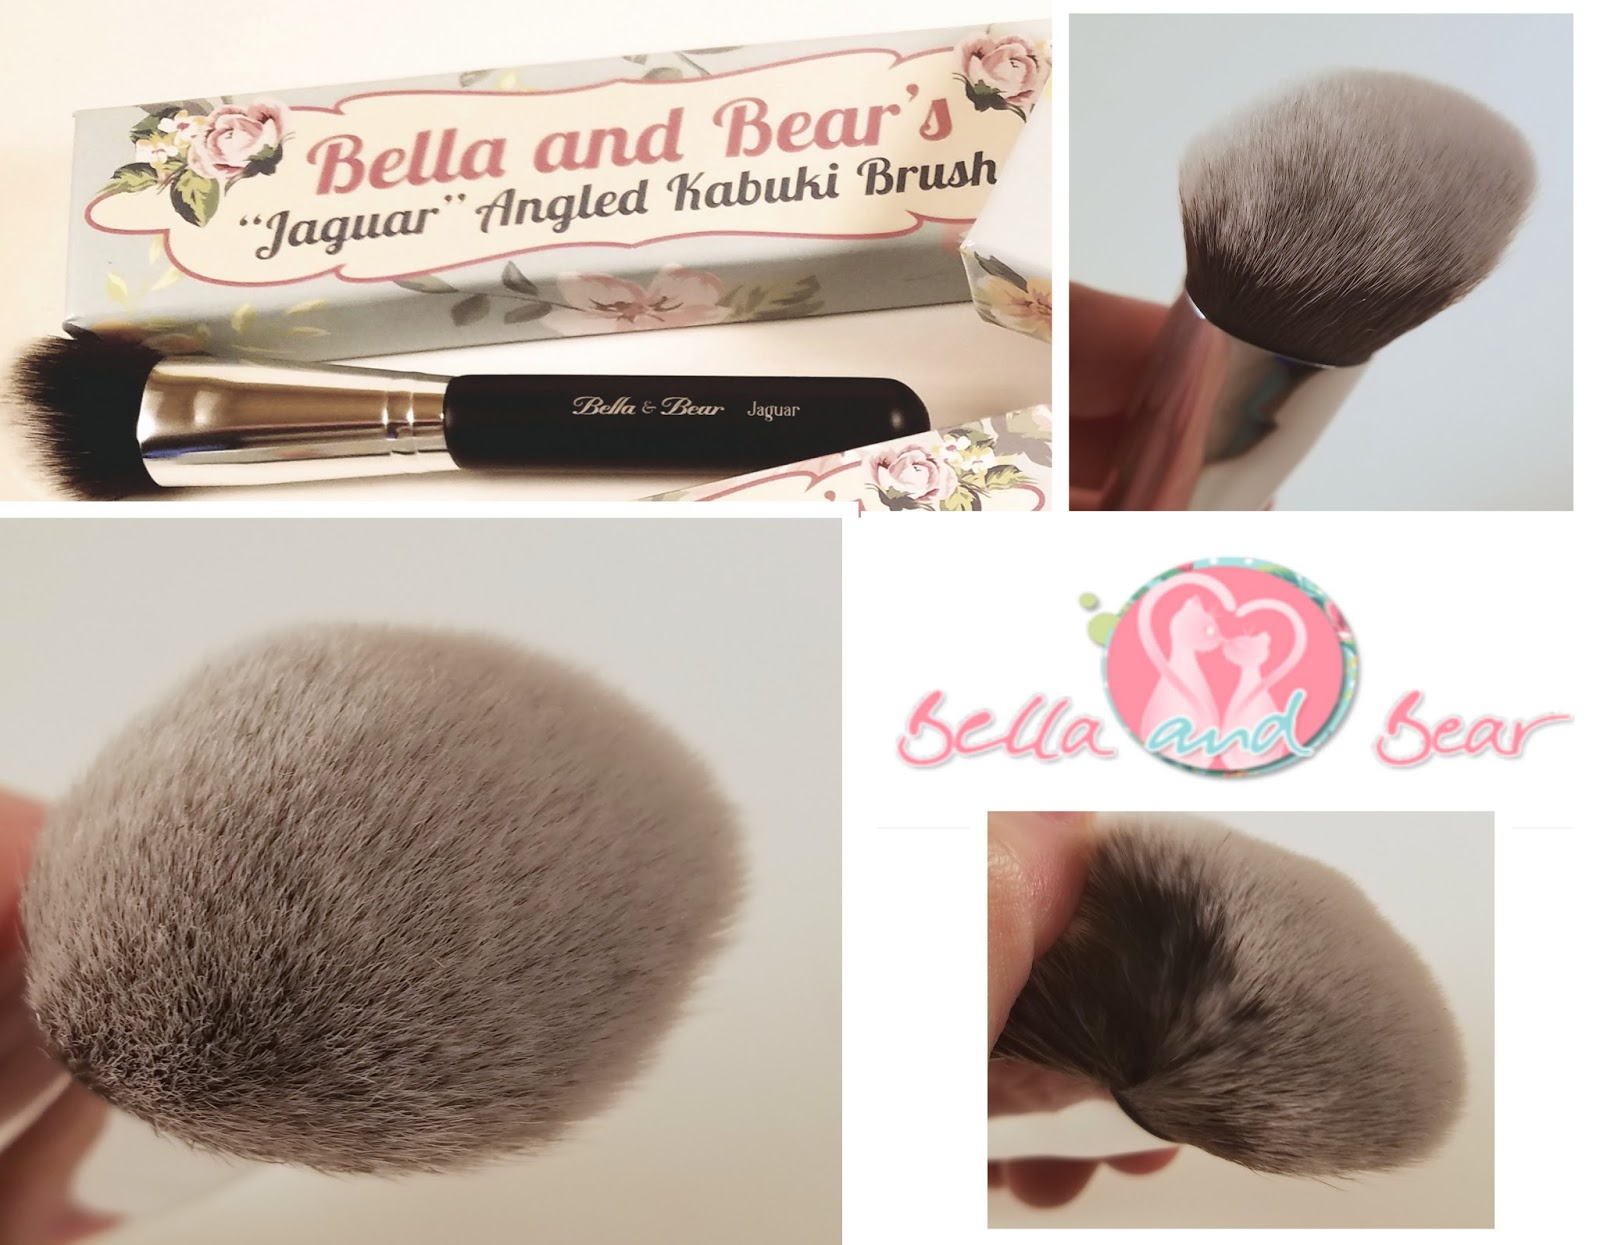 Bella & Bear Introduces Their New Makeup Brush Line And It's Purrfect! Plus Tips On Keeping Makeup Brushes Clean And Safe